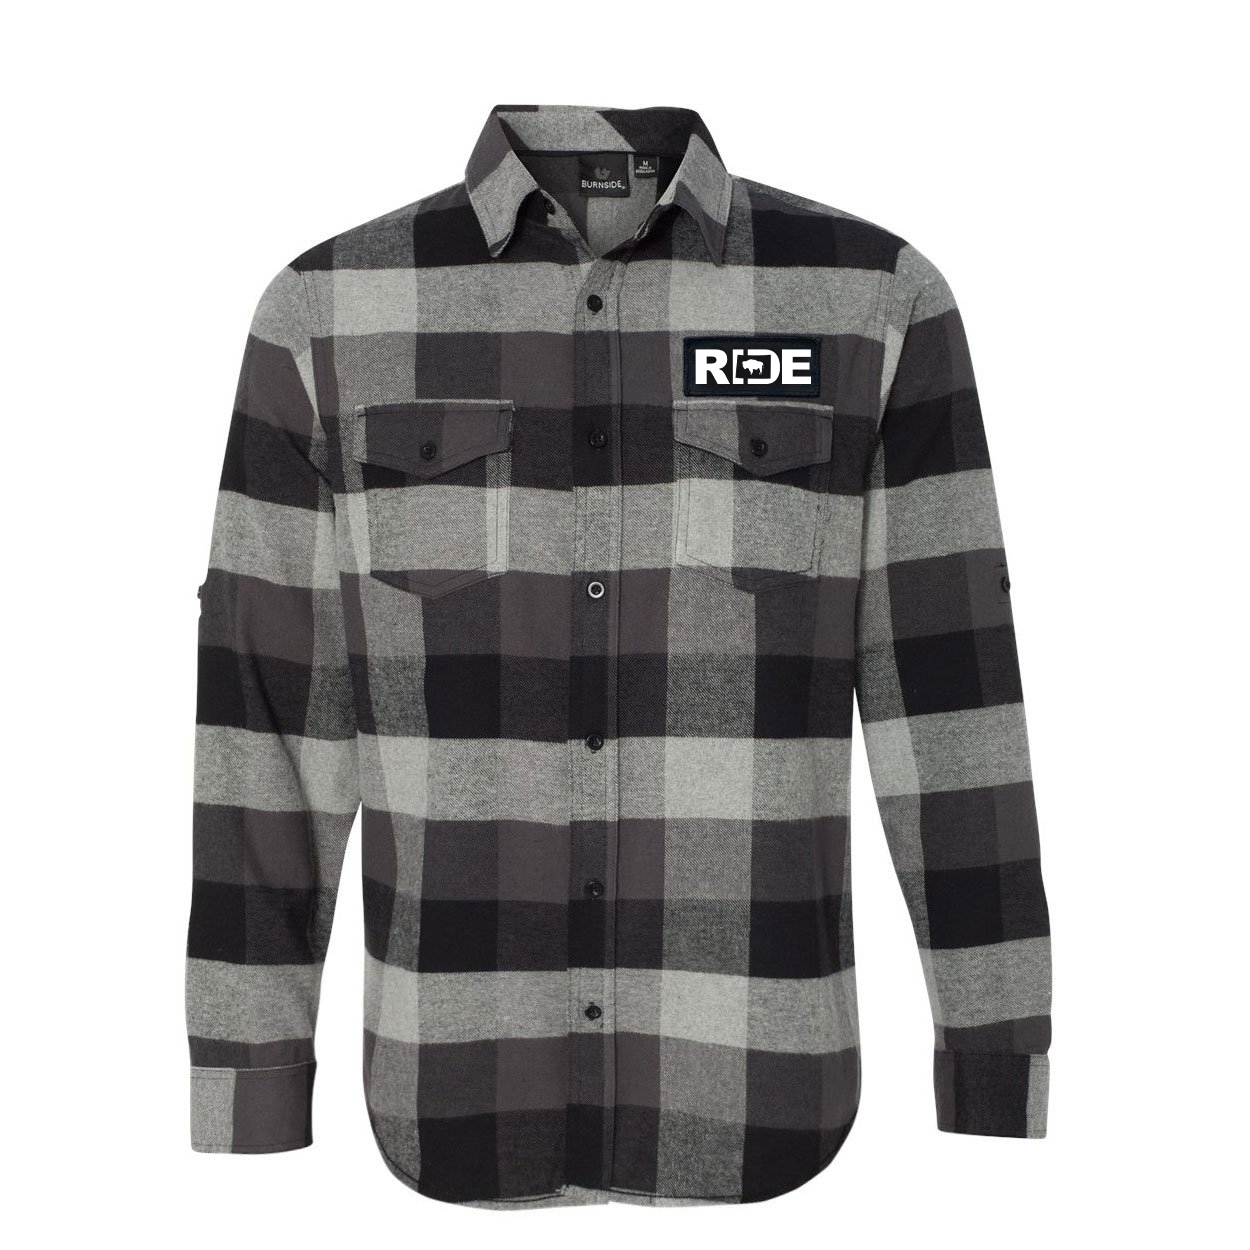 Ride Wyoming Classic Unisex Long Sleeve Woven Patch Flannel Shirt Black/Gray (White Logo)